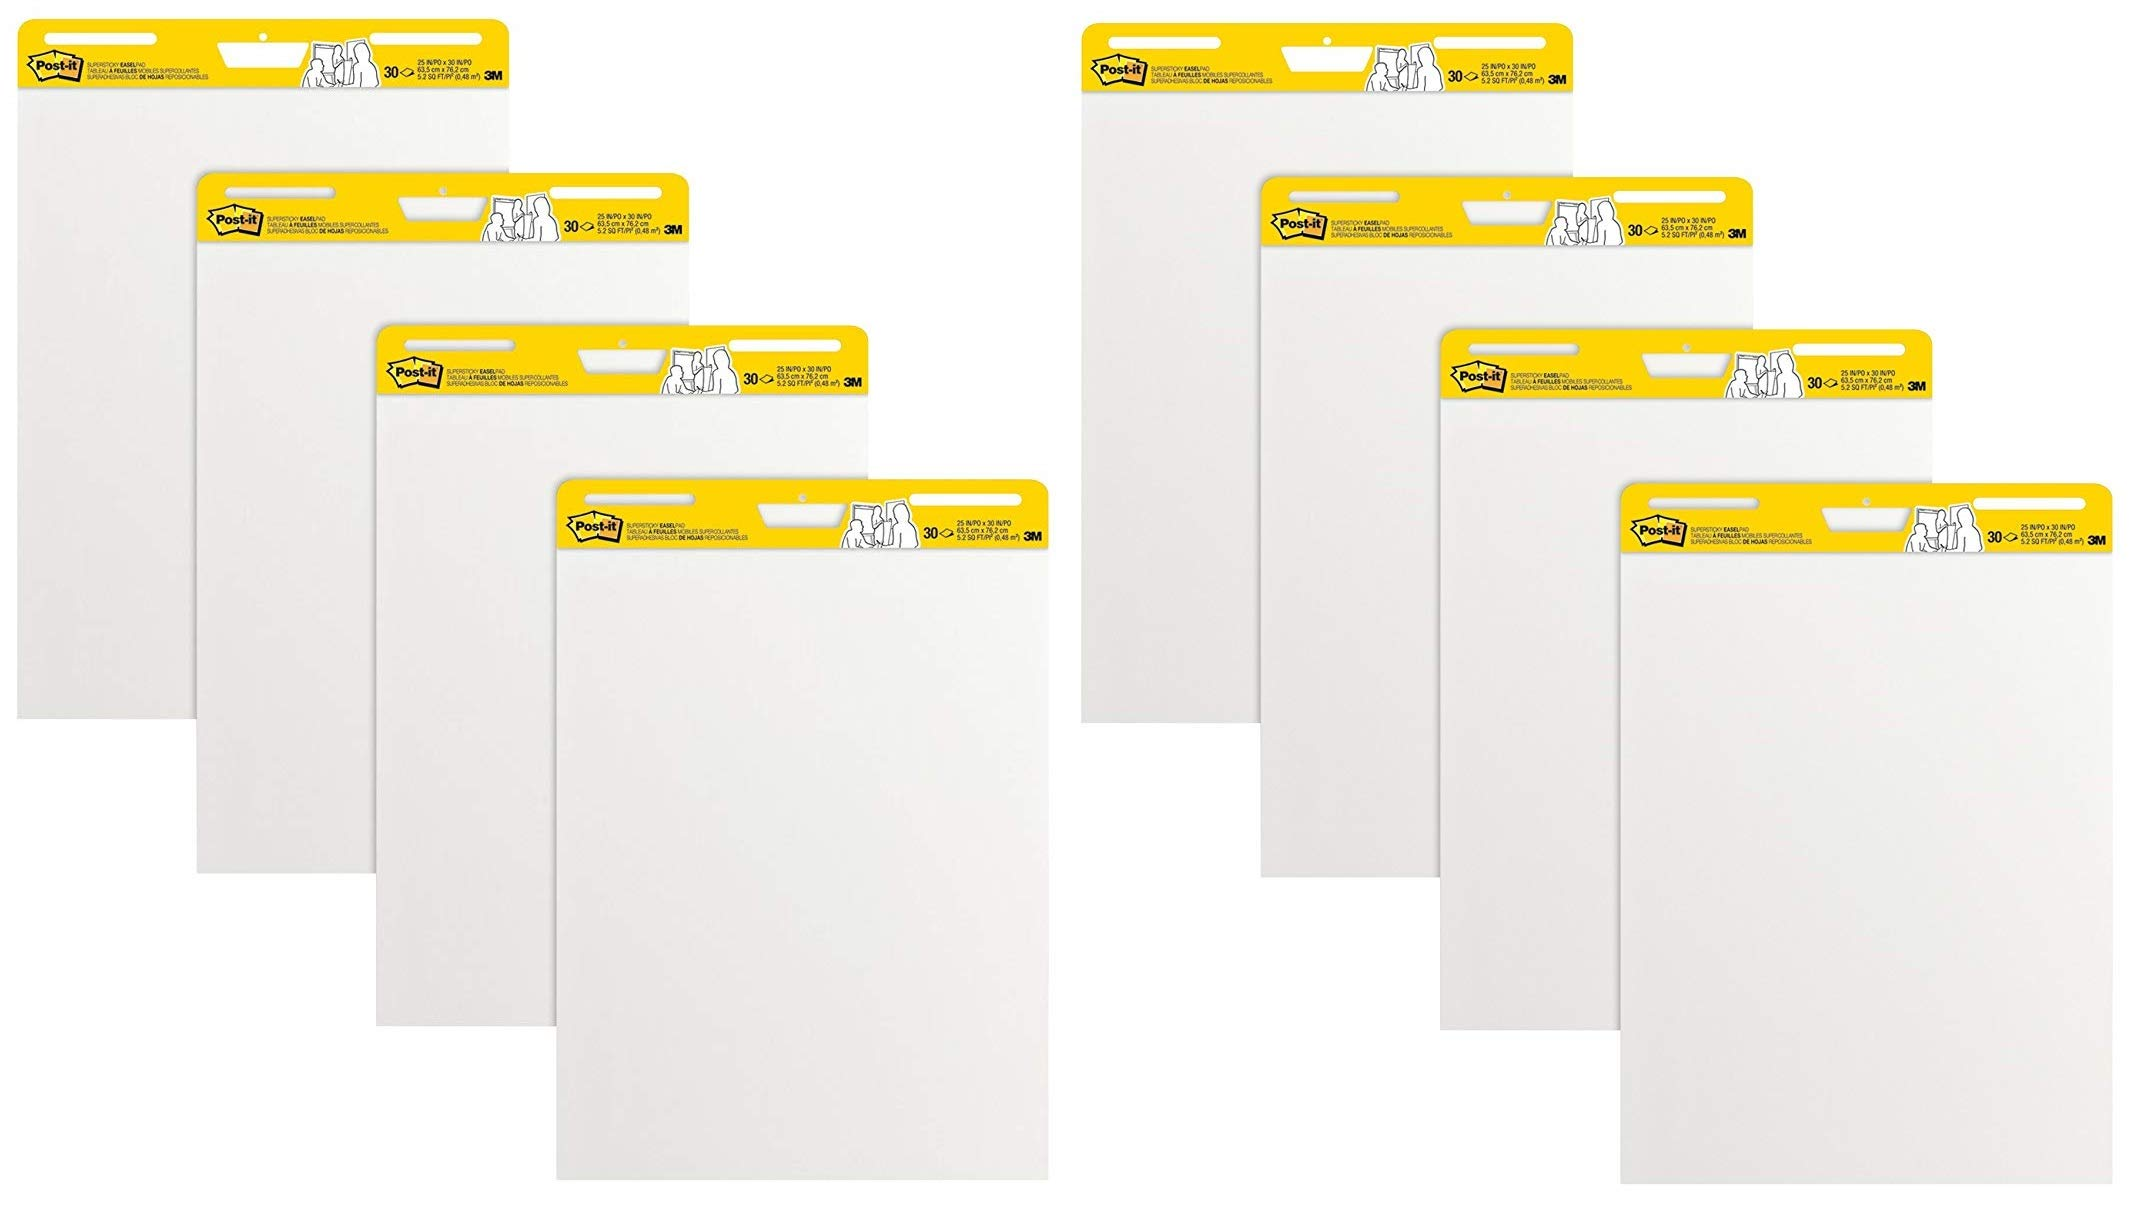 Post-it Super Sticky Easel Pad, 25 x 30 Inches, 30 Sheets/Pad, 1 Pad (559SS), Large White Premium Self Stick Flip Chart Paper, Super Sticking Power (2-(Pack of 4))